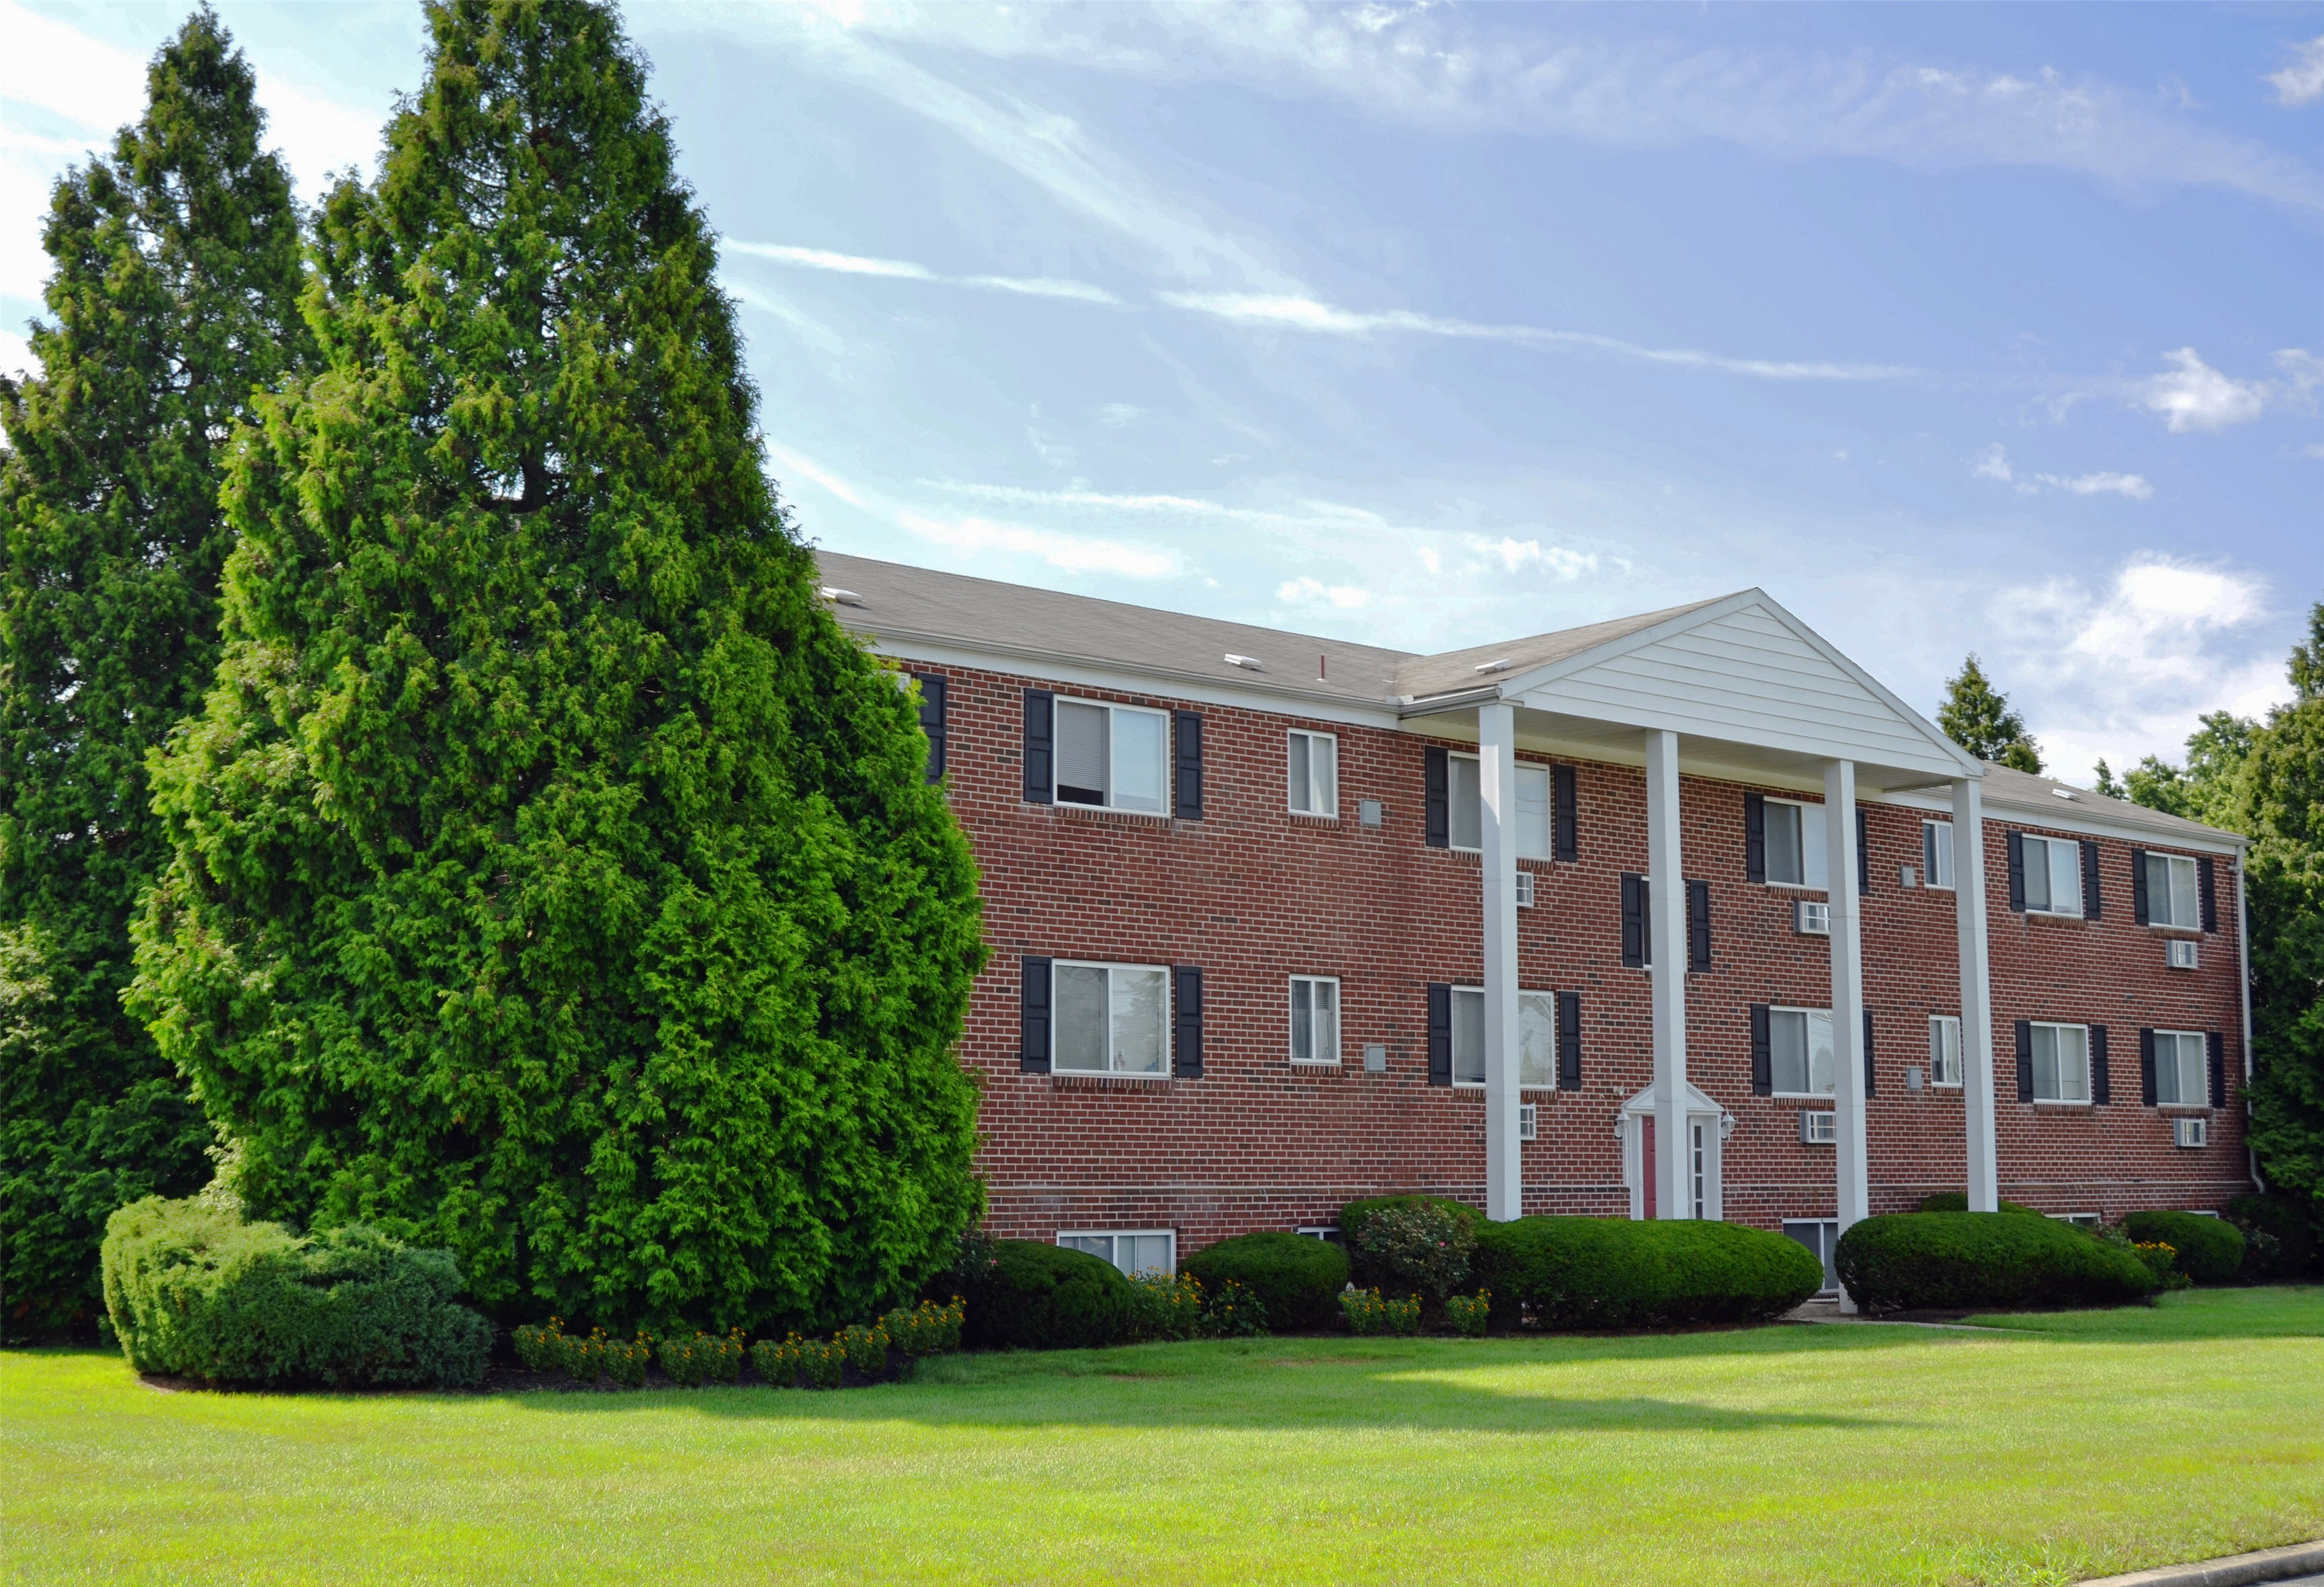 Apartments Near F & M Sweetbriar Apartments for Franklin & Marshall College Students in Lancaster, PA